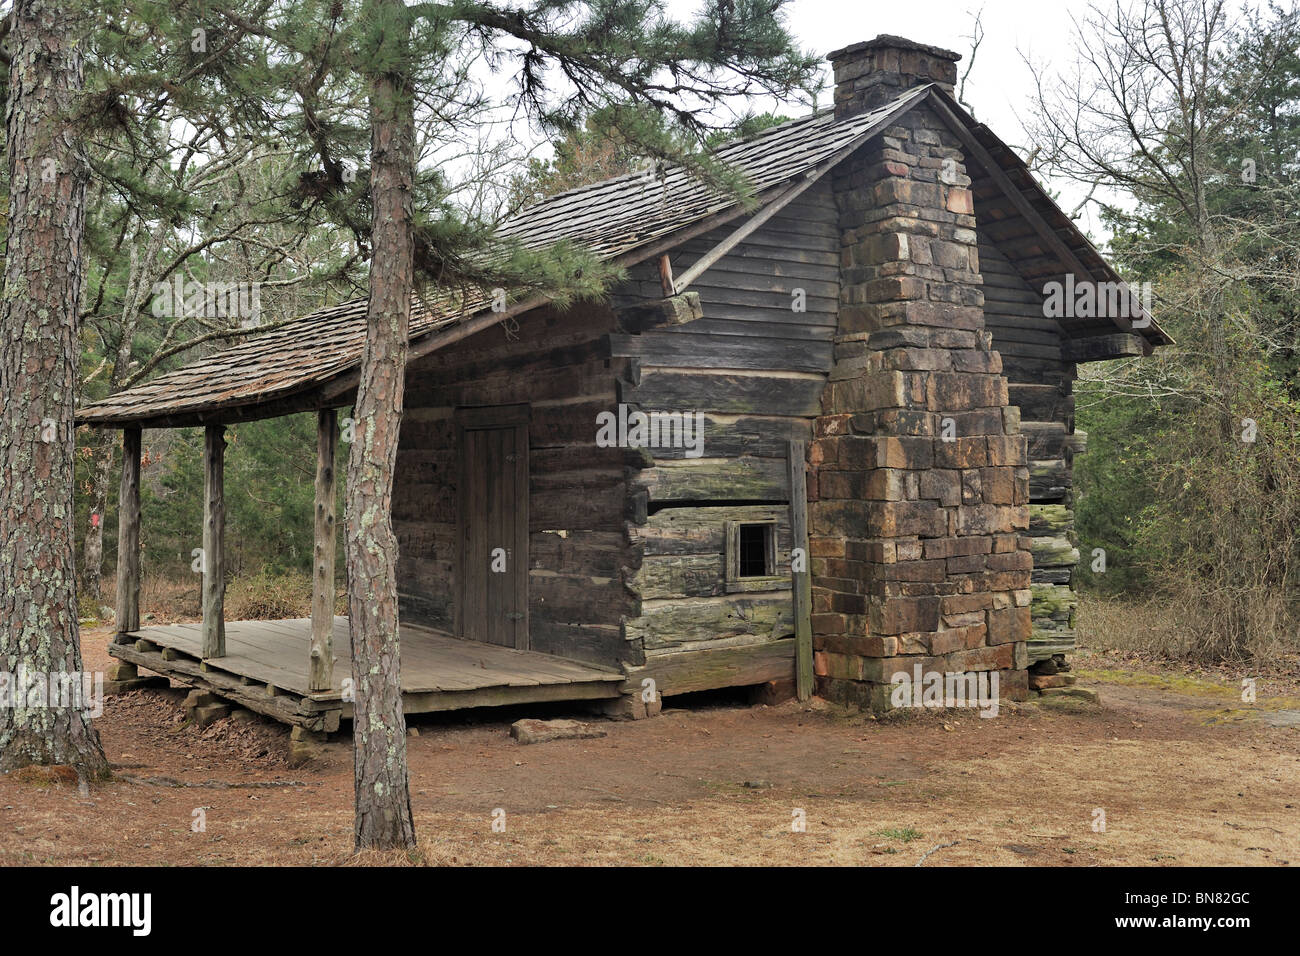 old pioneer cabin petit jean state park arkansas stock photo royalty free image 30295788 alamy. Black Bedroom Furniture Sets. Home Design Ideas